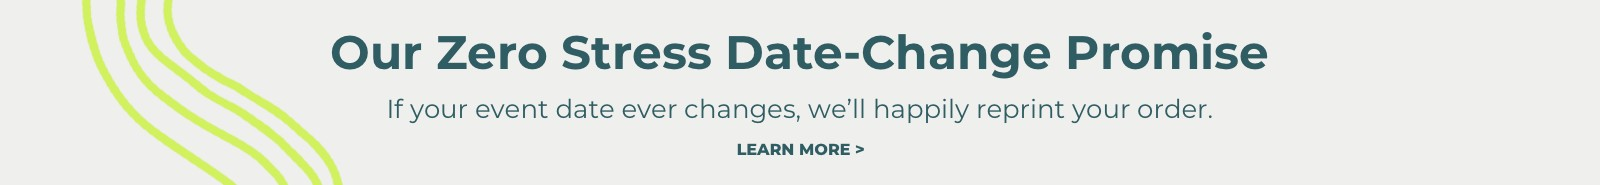 Date change promise.